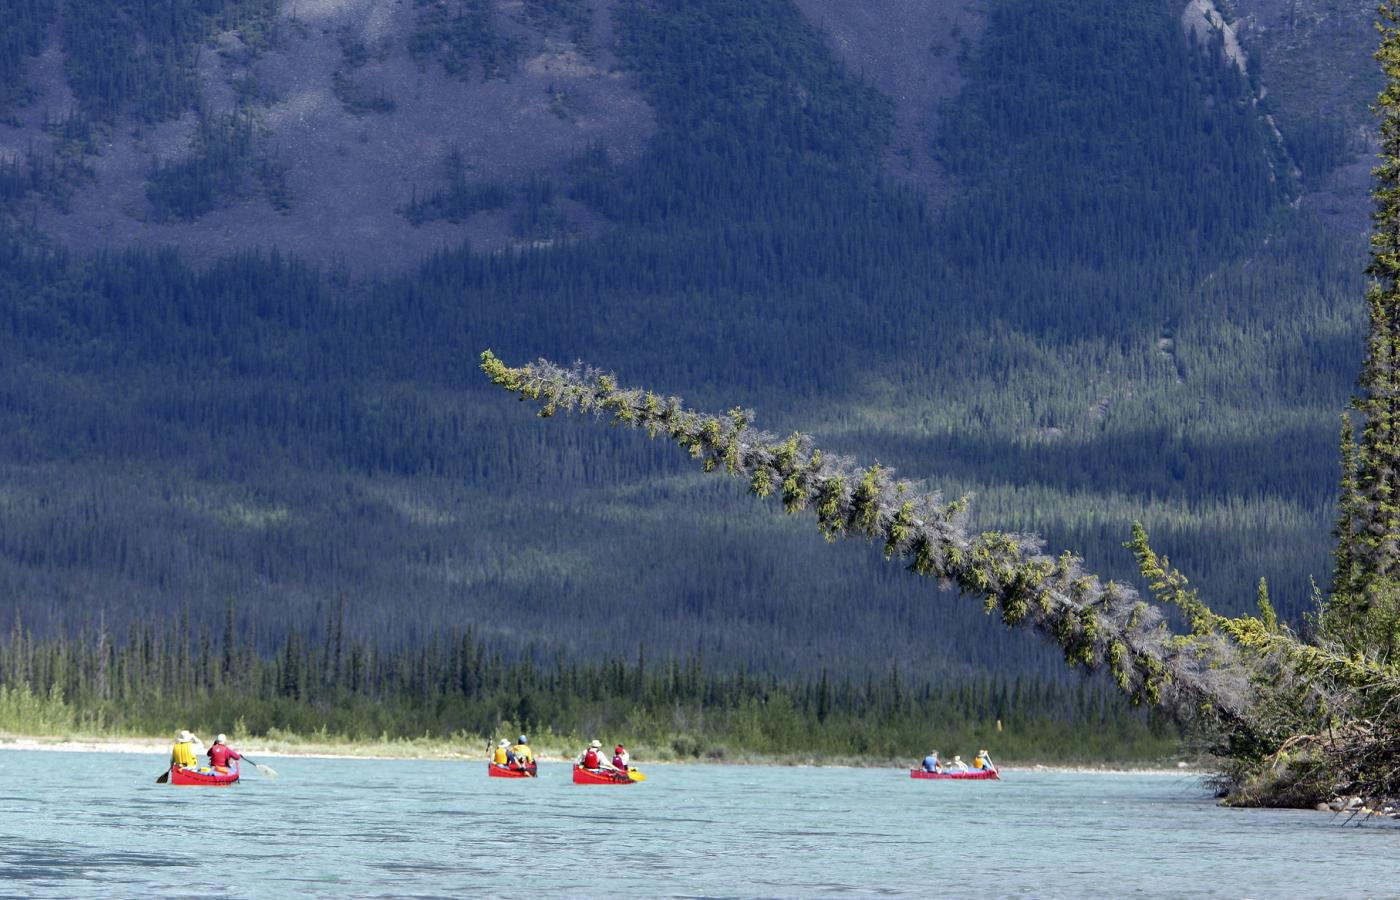 The Keele River runs through the Mackenzie Mountains in Canada's Northwest Territories